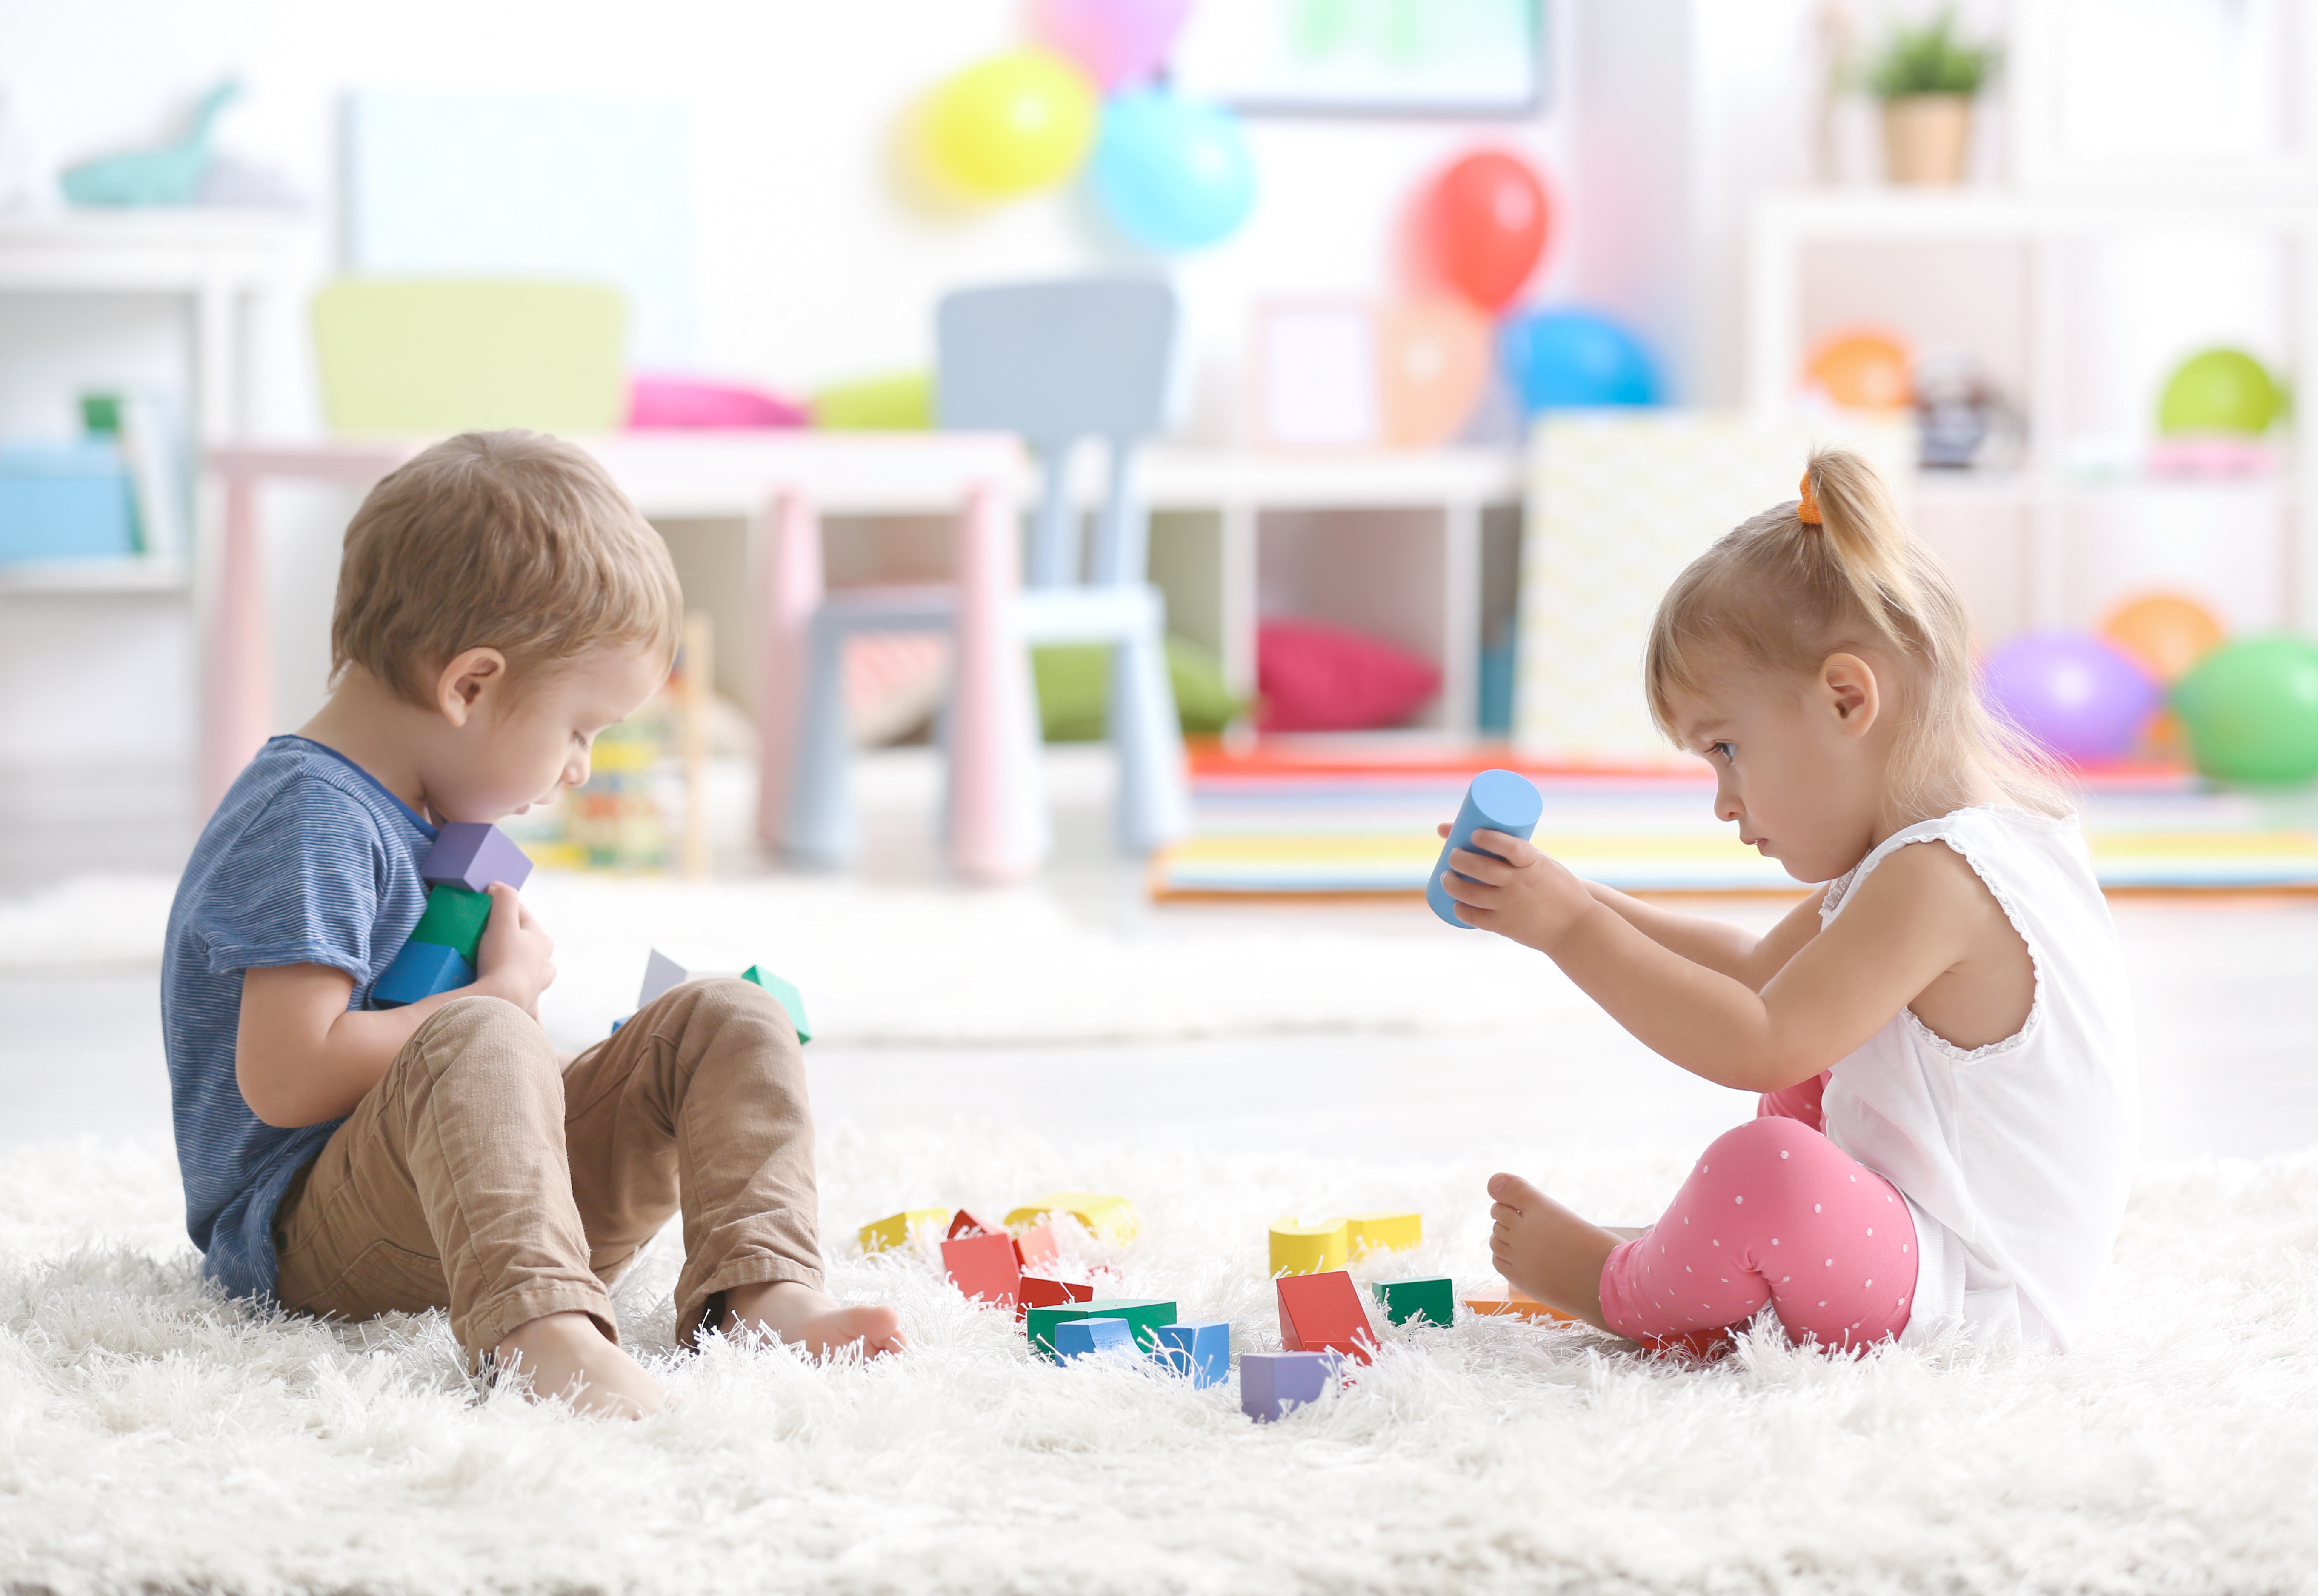 Two small children playing on floor